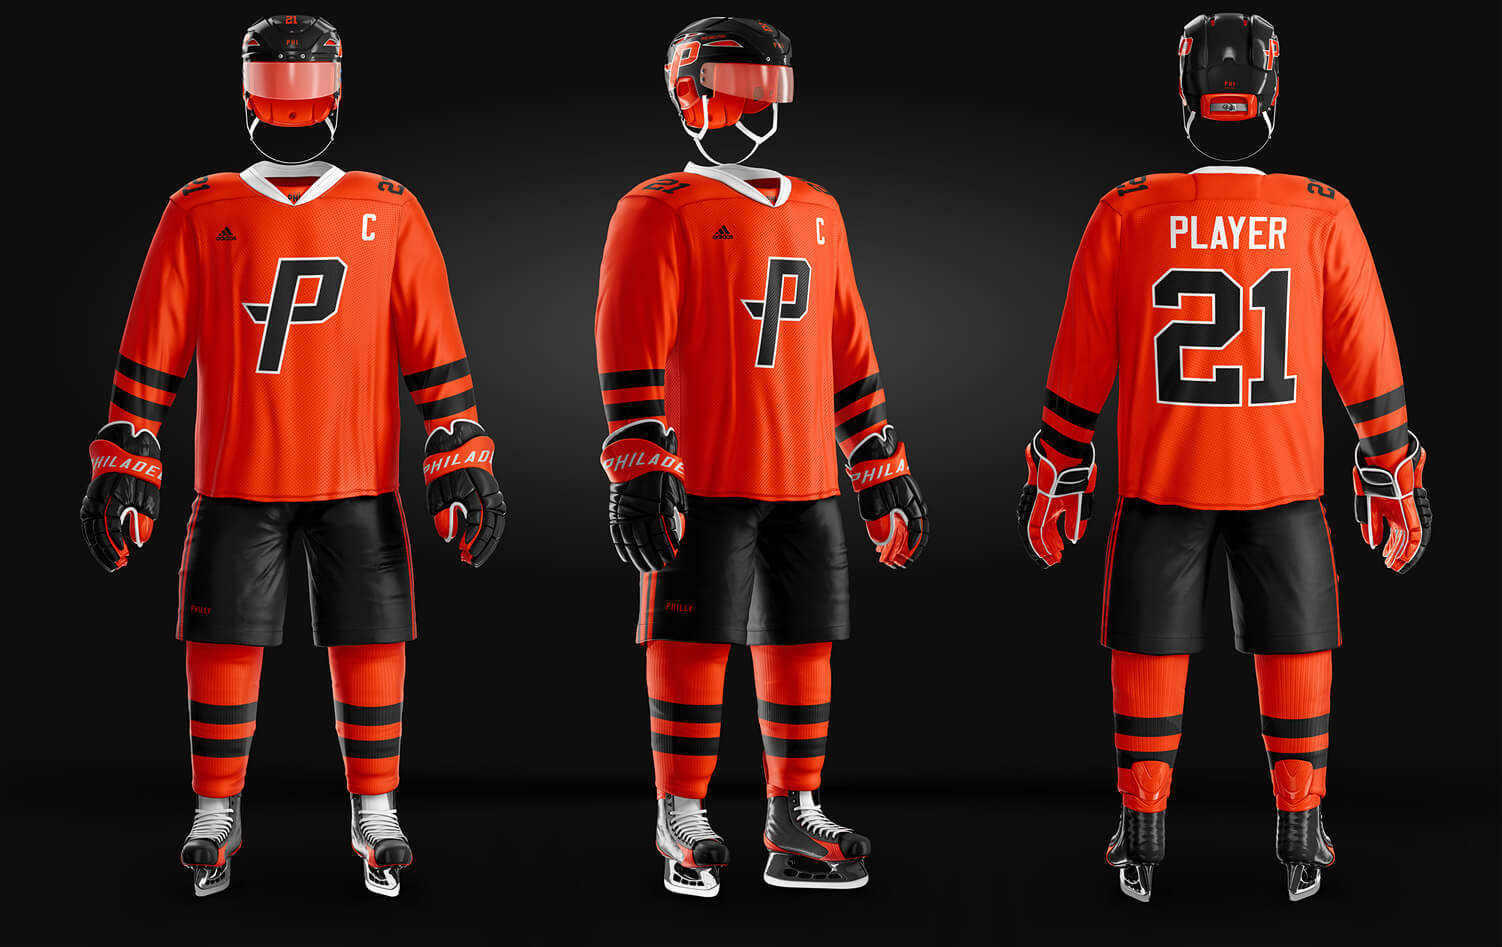 SAMPLES OF FULL HOCKEY UNIFORMS USING THIS TEMPLATE